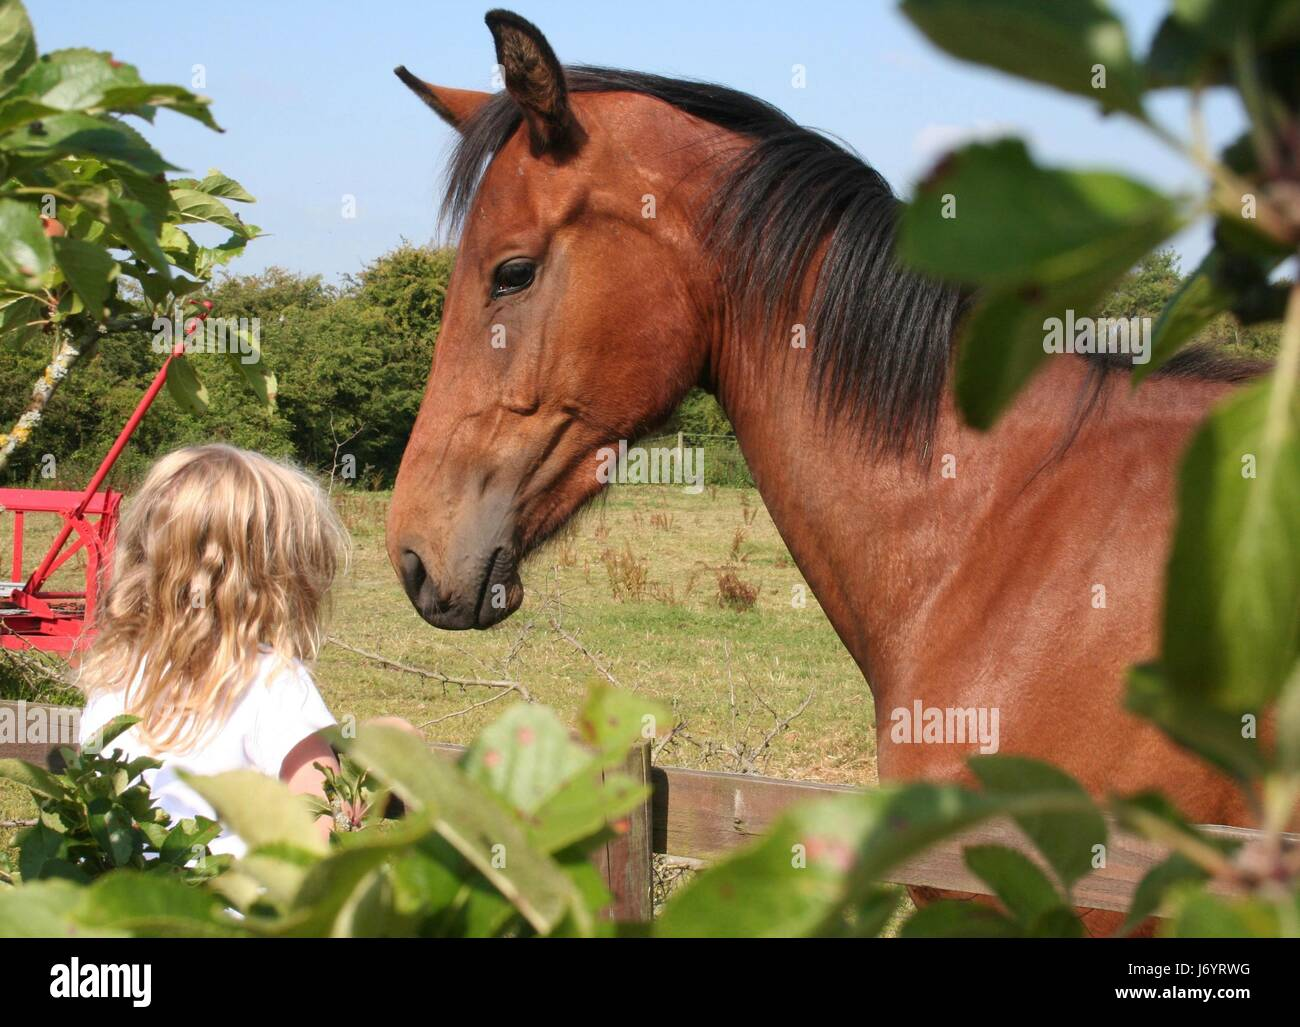 Little girl talking to a bay horse - Stock Image